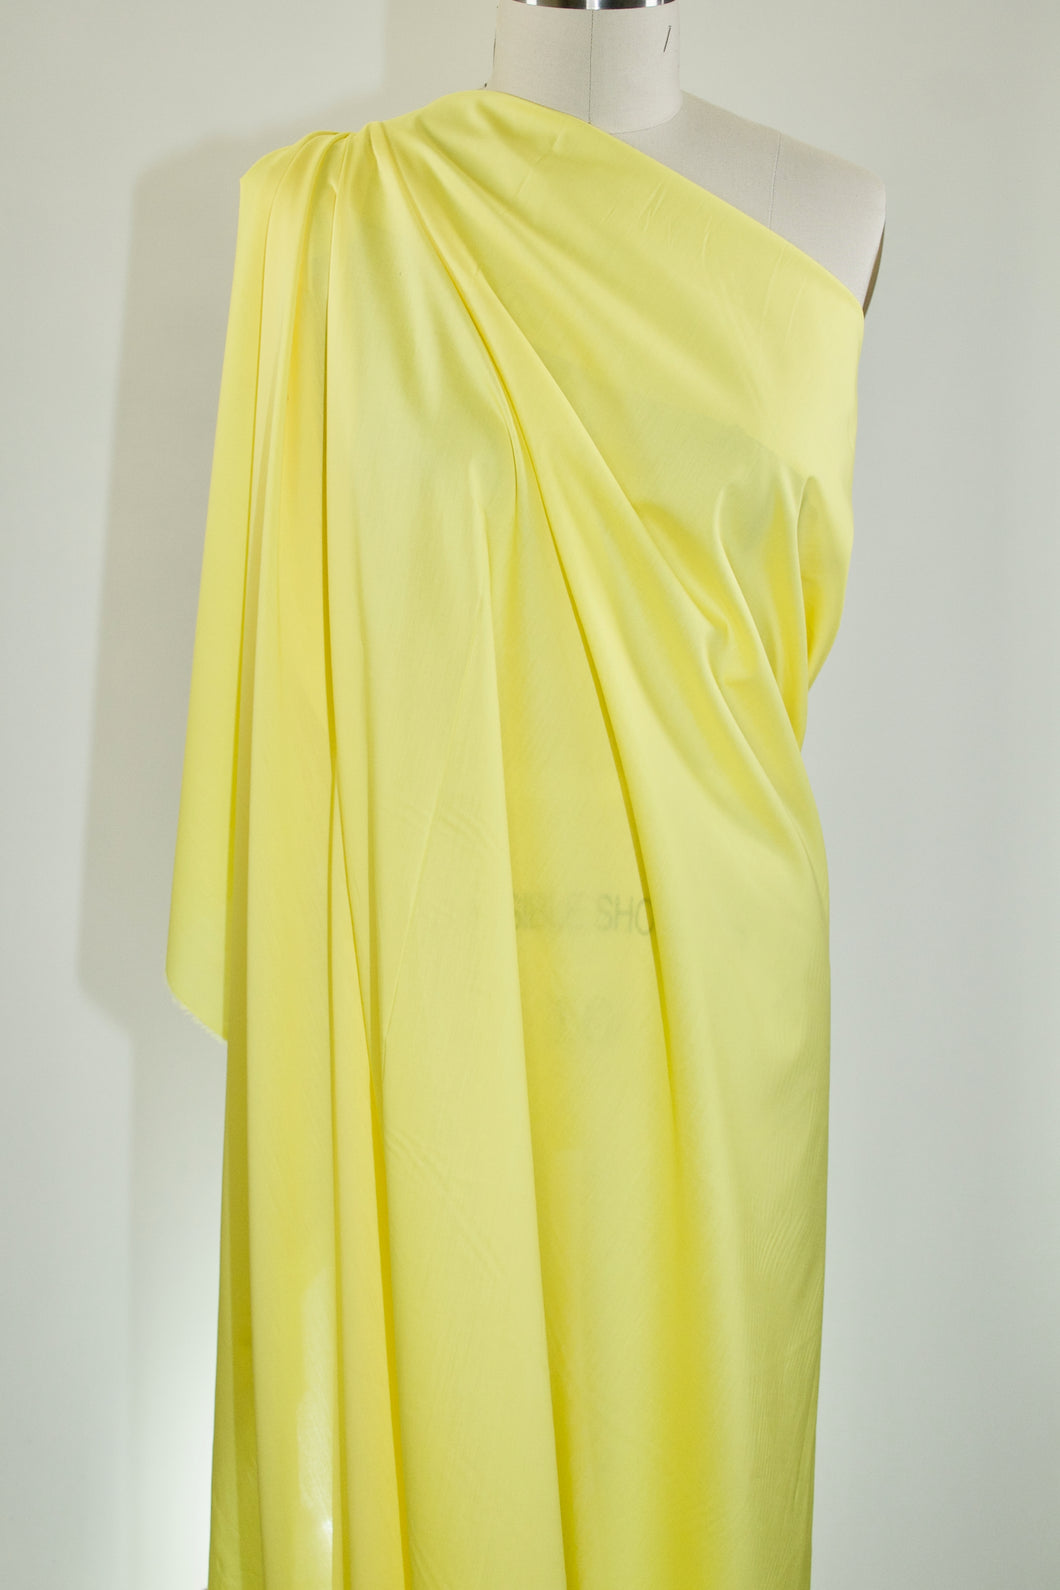 Italian Designer Satin Faced Cotton Shirting - Blazing Yellow